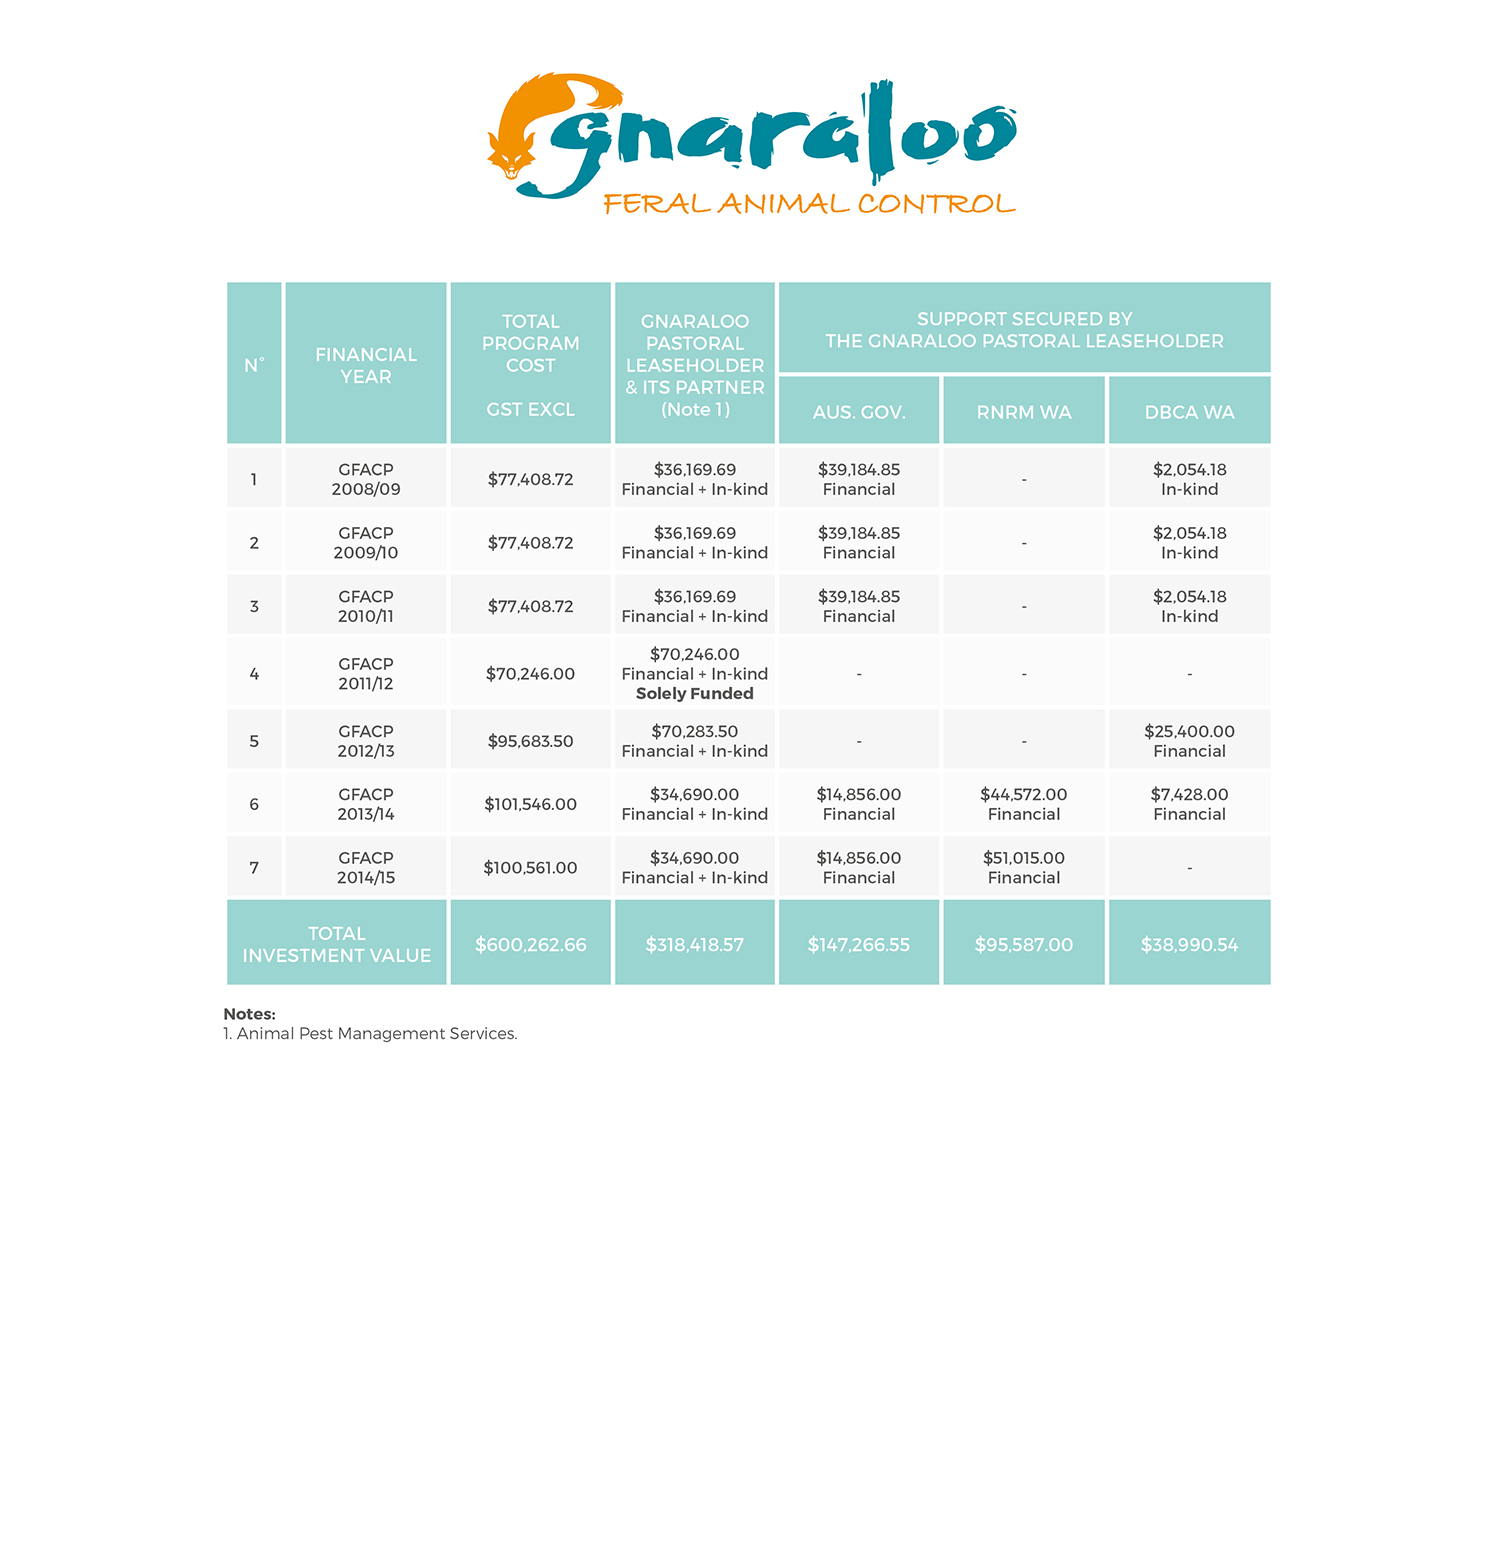 Funding and resourcing of the Gnaraloo Feral Animal Control Program 2008/09 – 2014/15